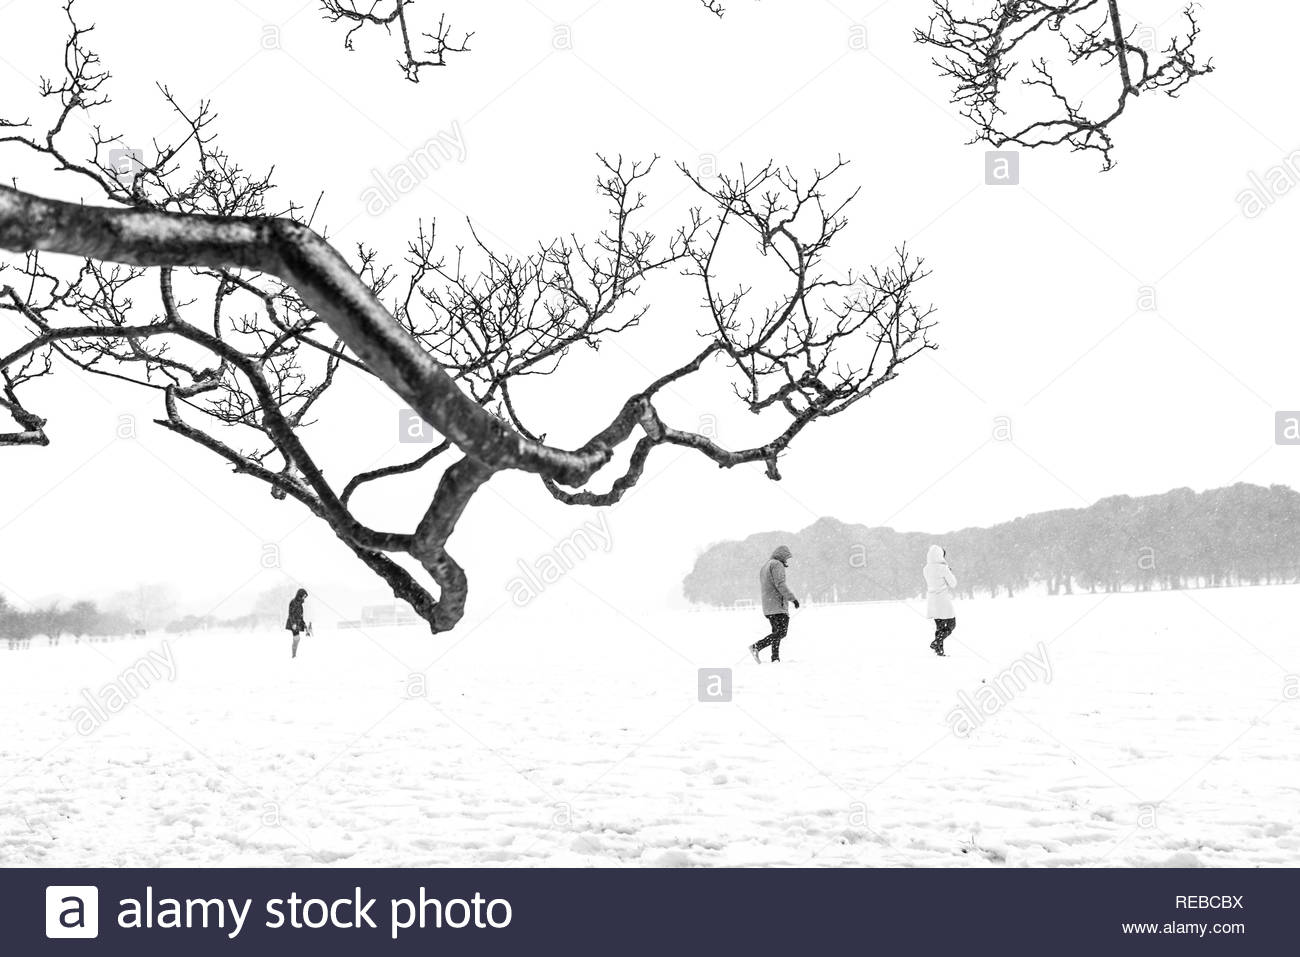 Three people walking on the snow and feeling the nature. Black & white picture. - Stock Image